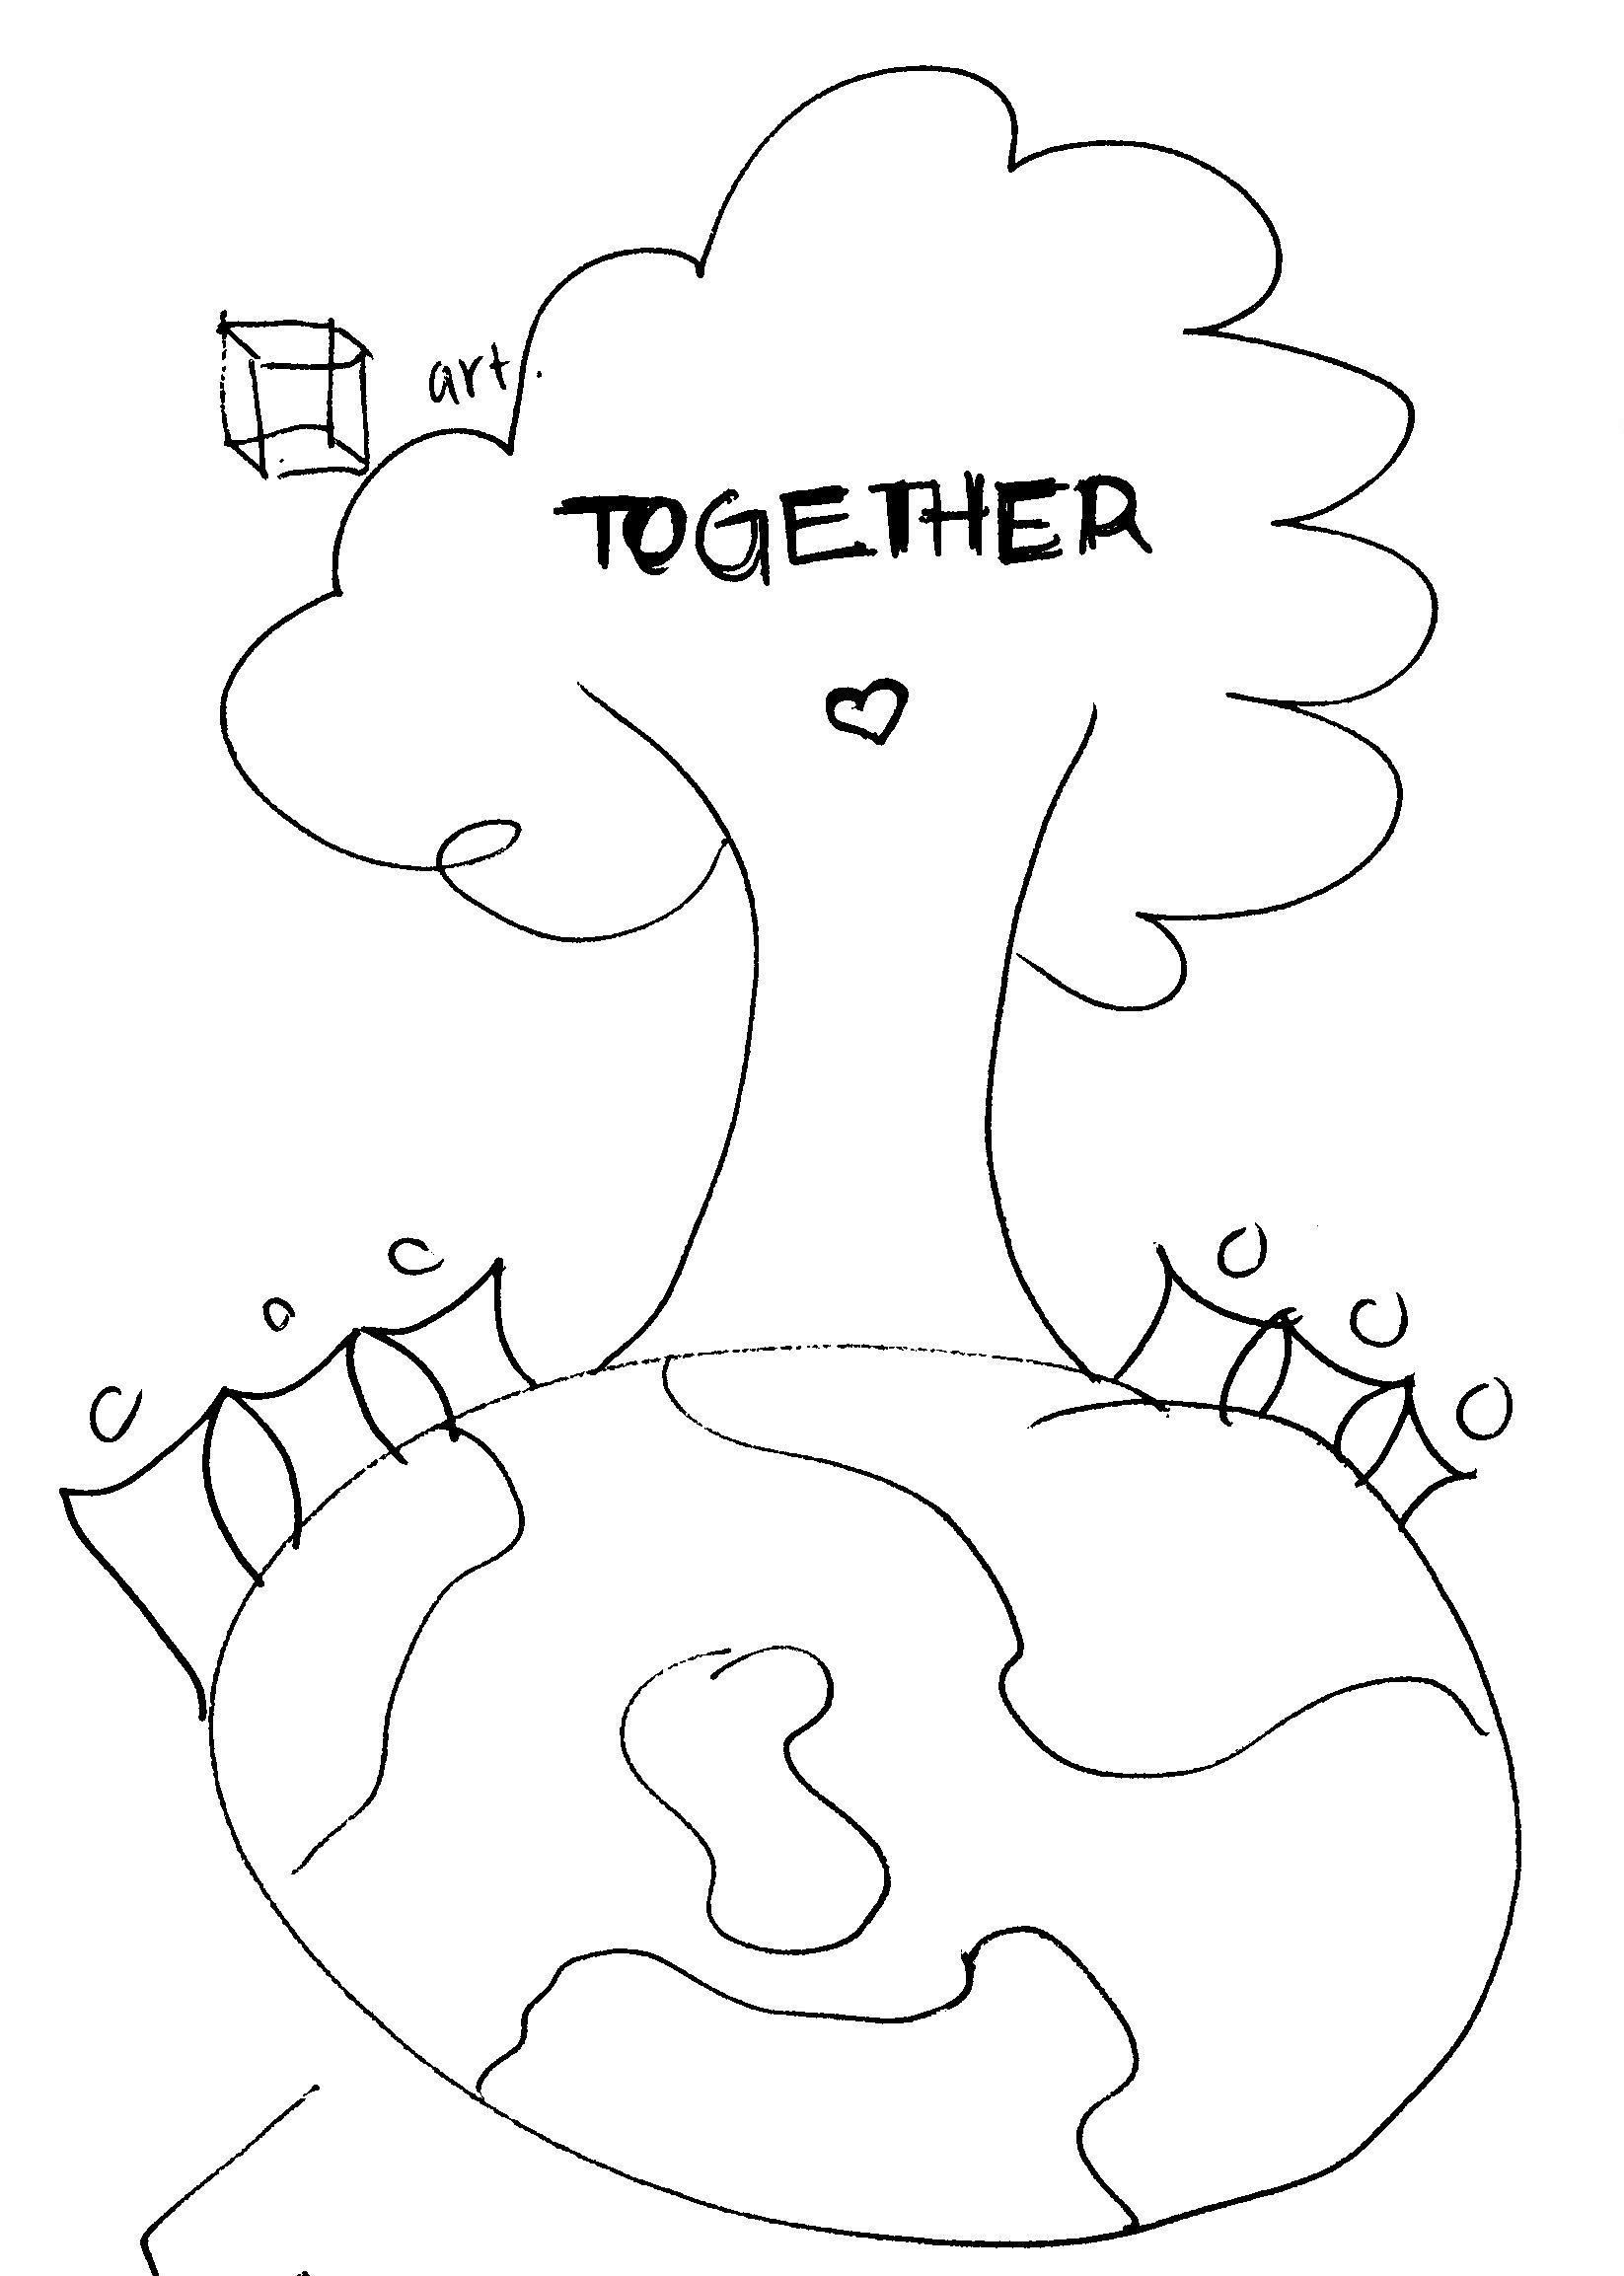 Together On Earth